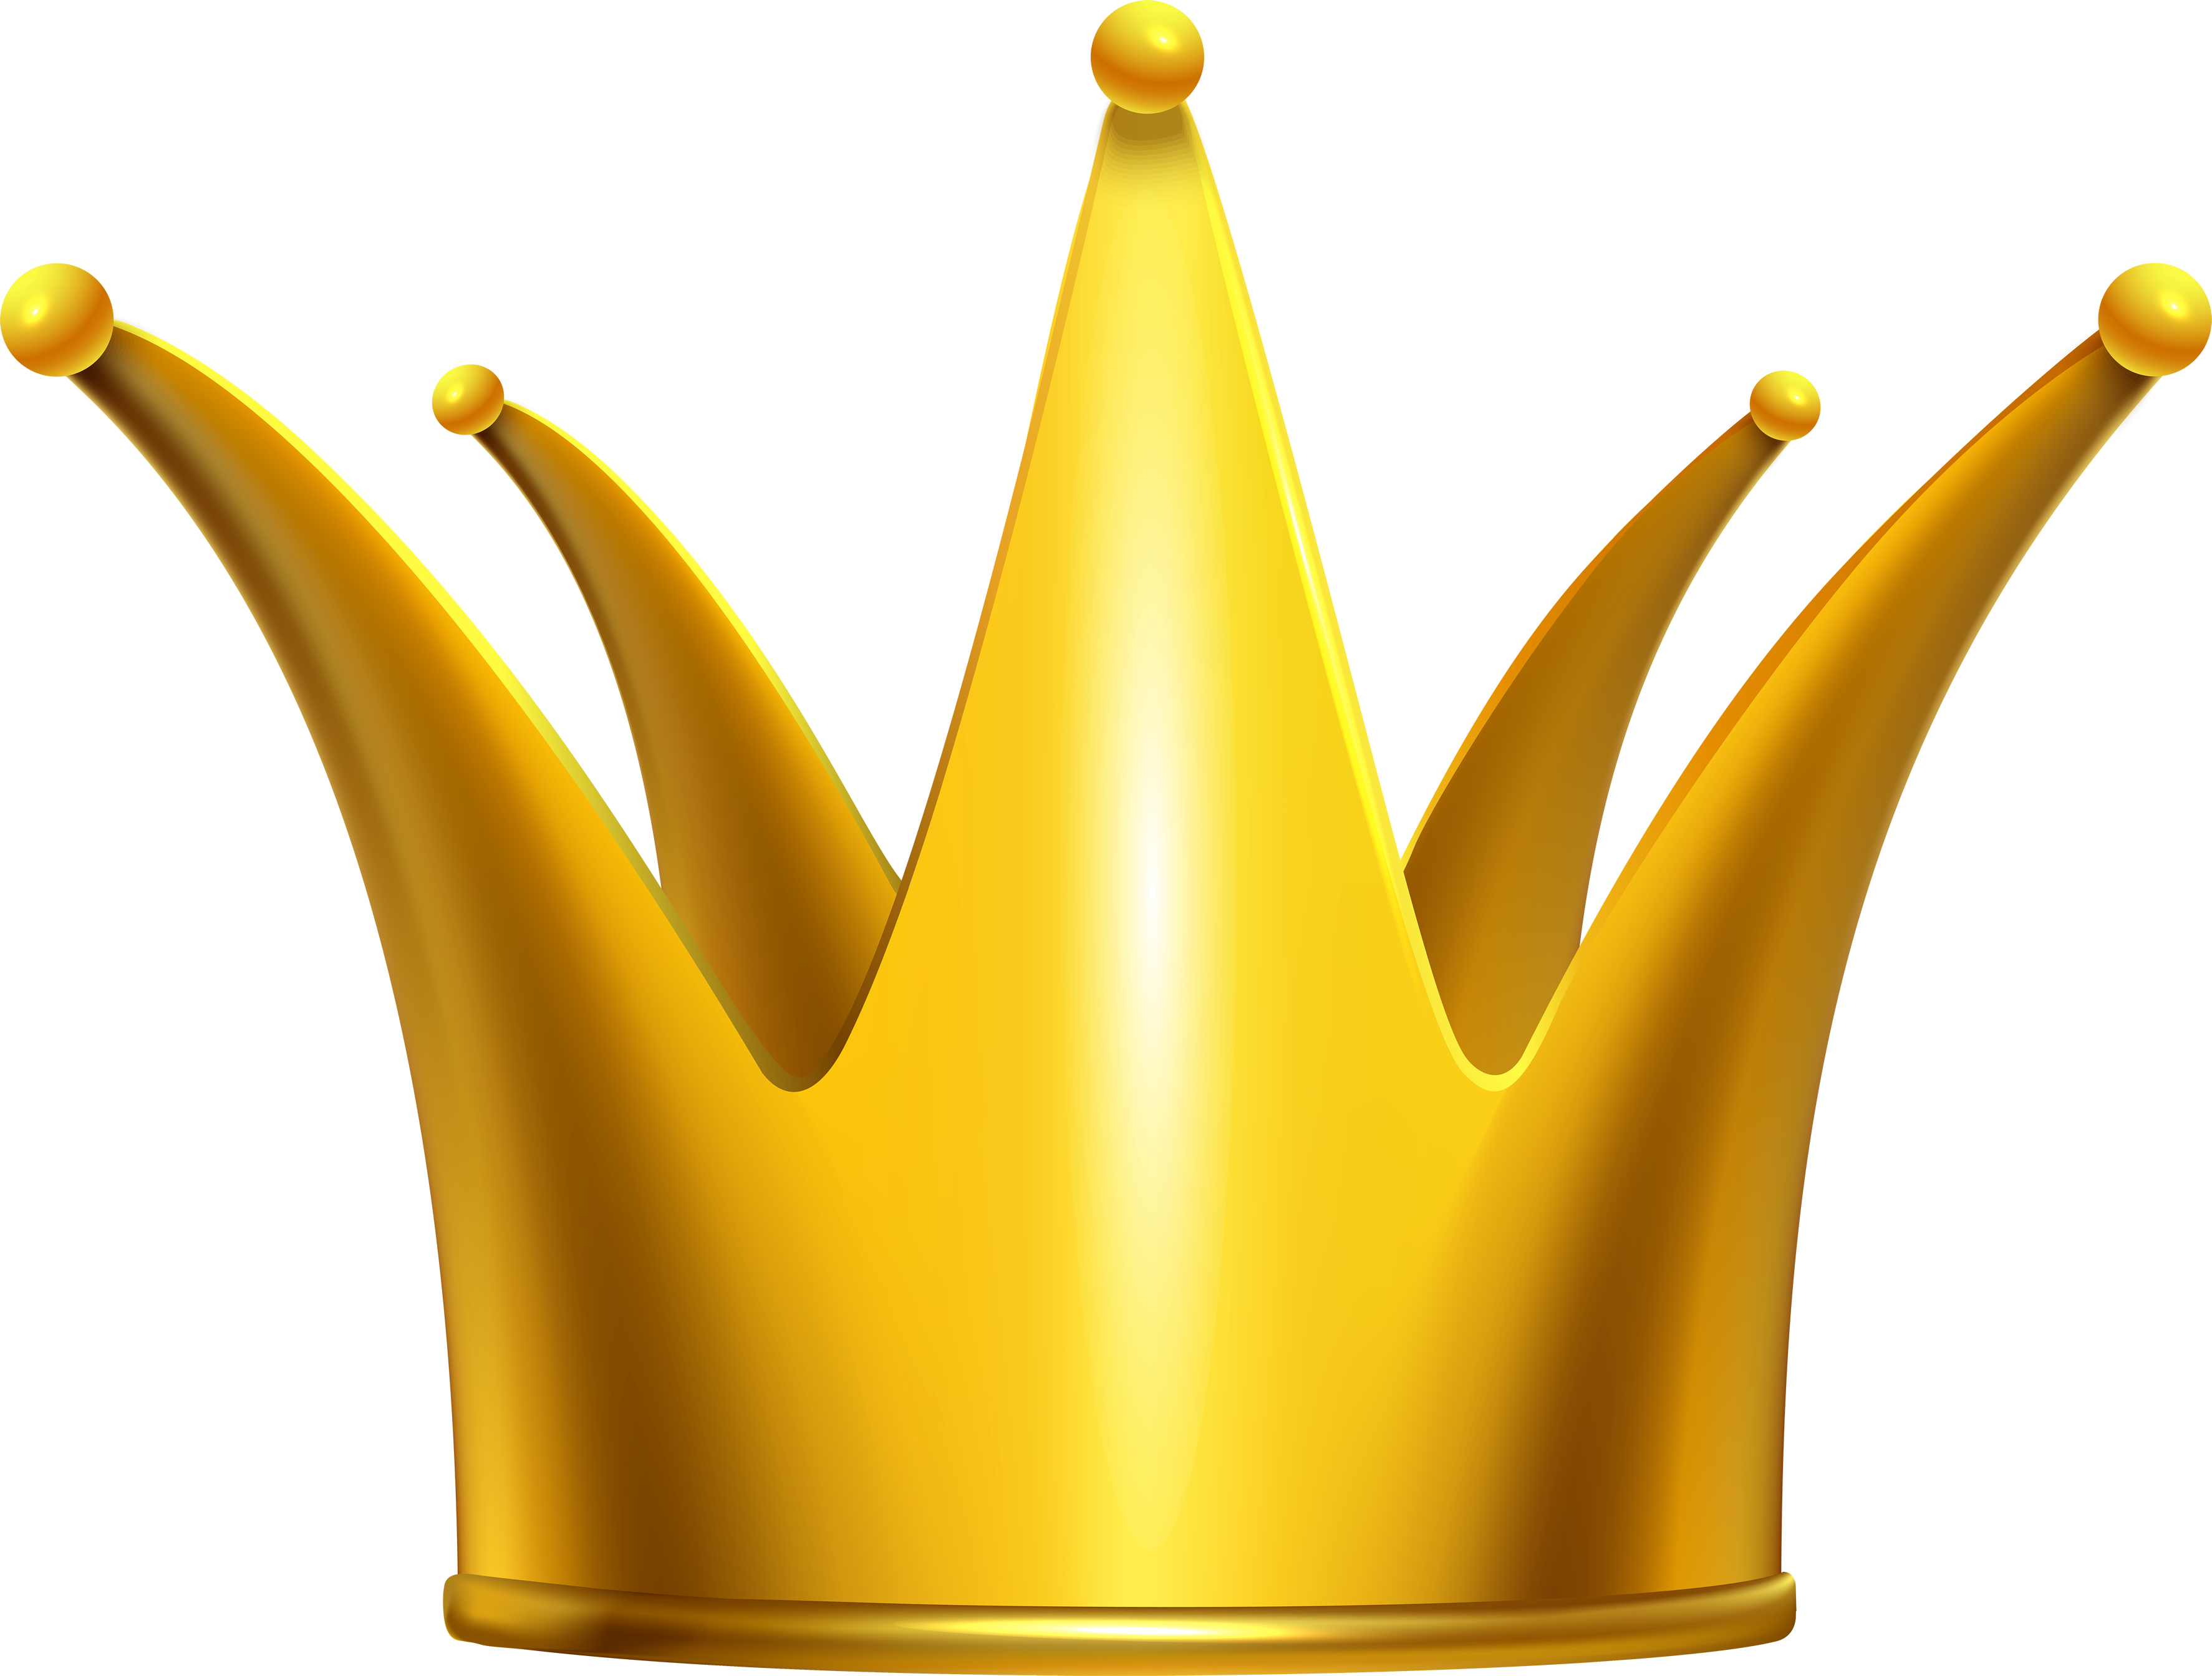 Halo clipart crown. Gold png